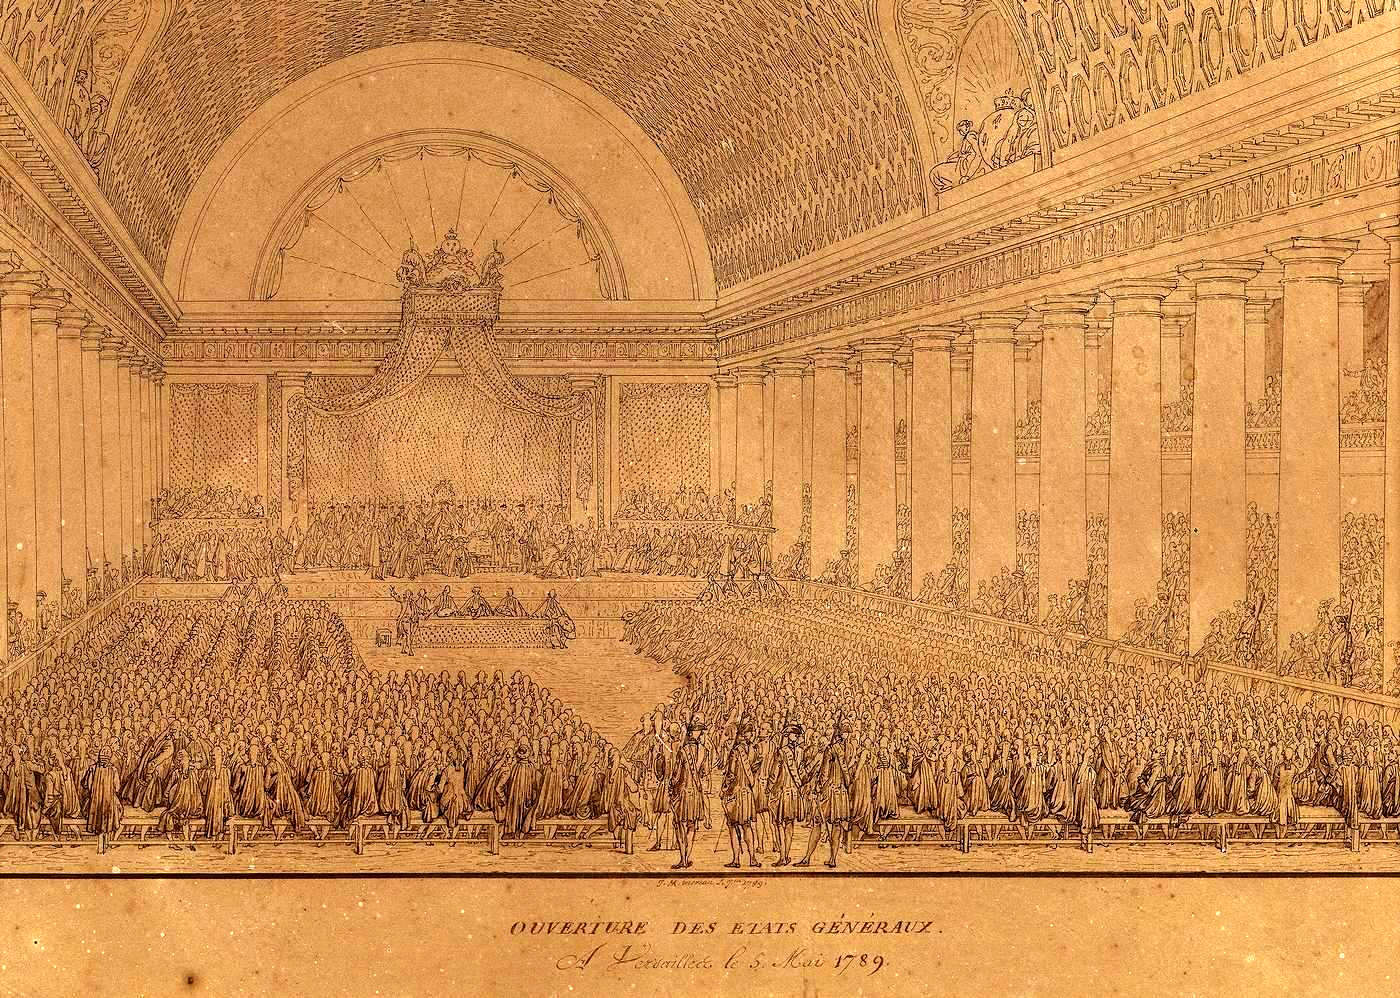 Charles Monet sketch of the opening of the Estates General on May 5, 1789.